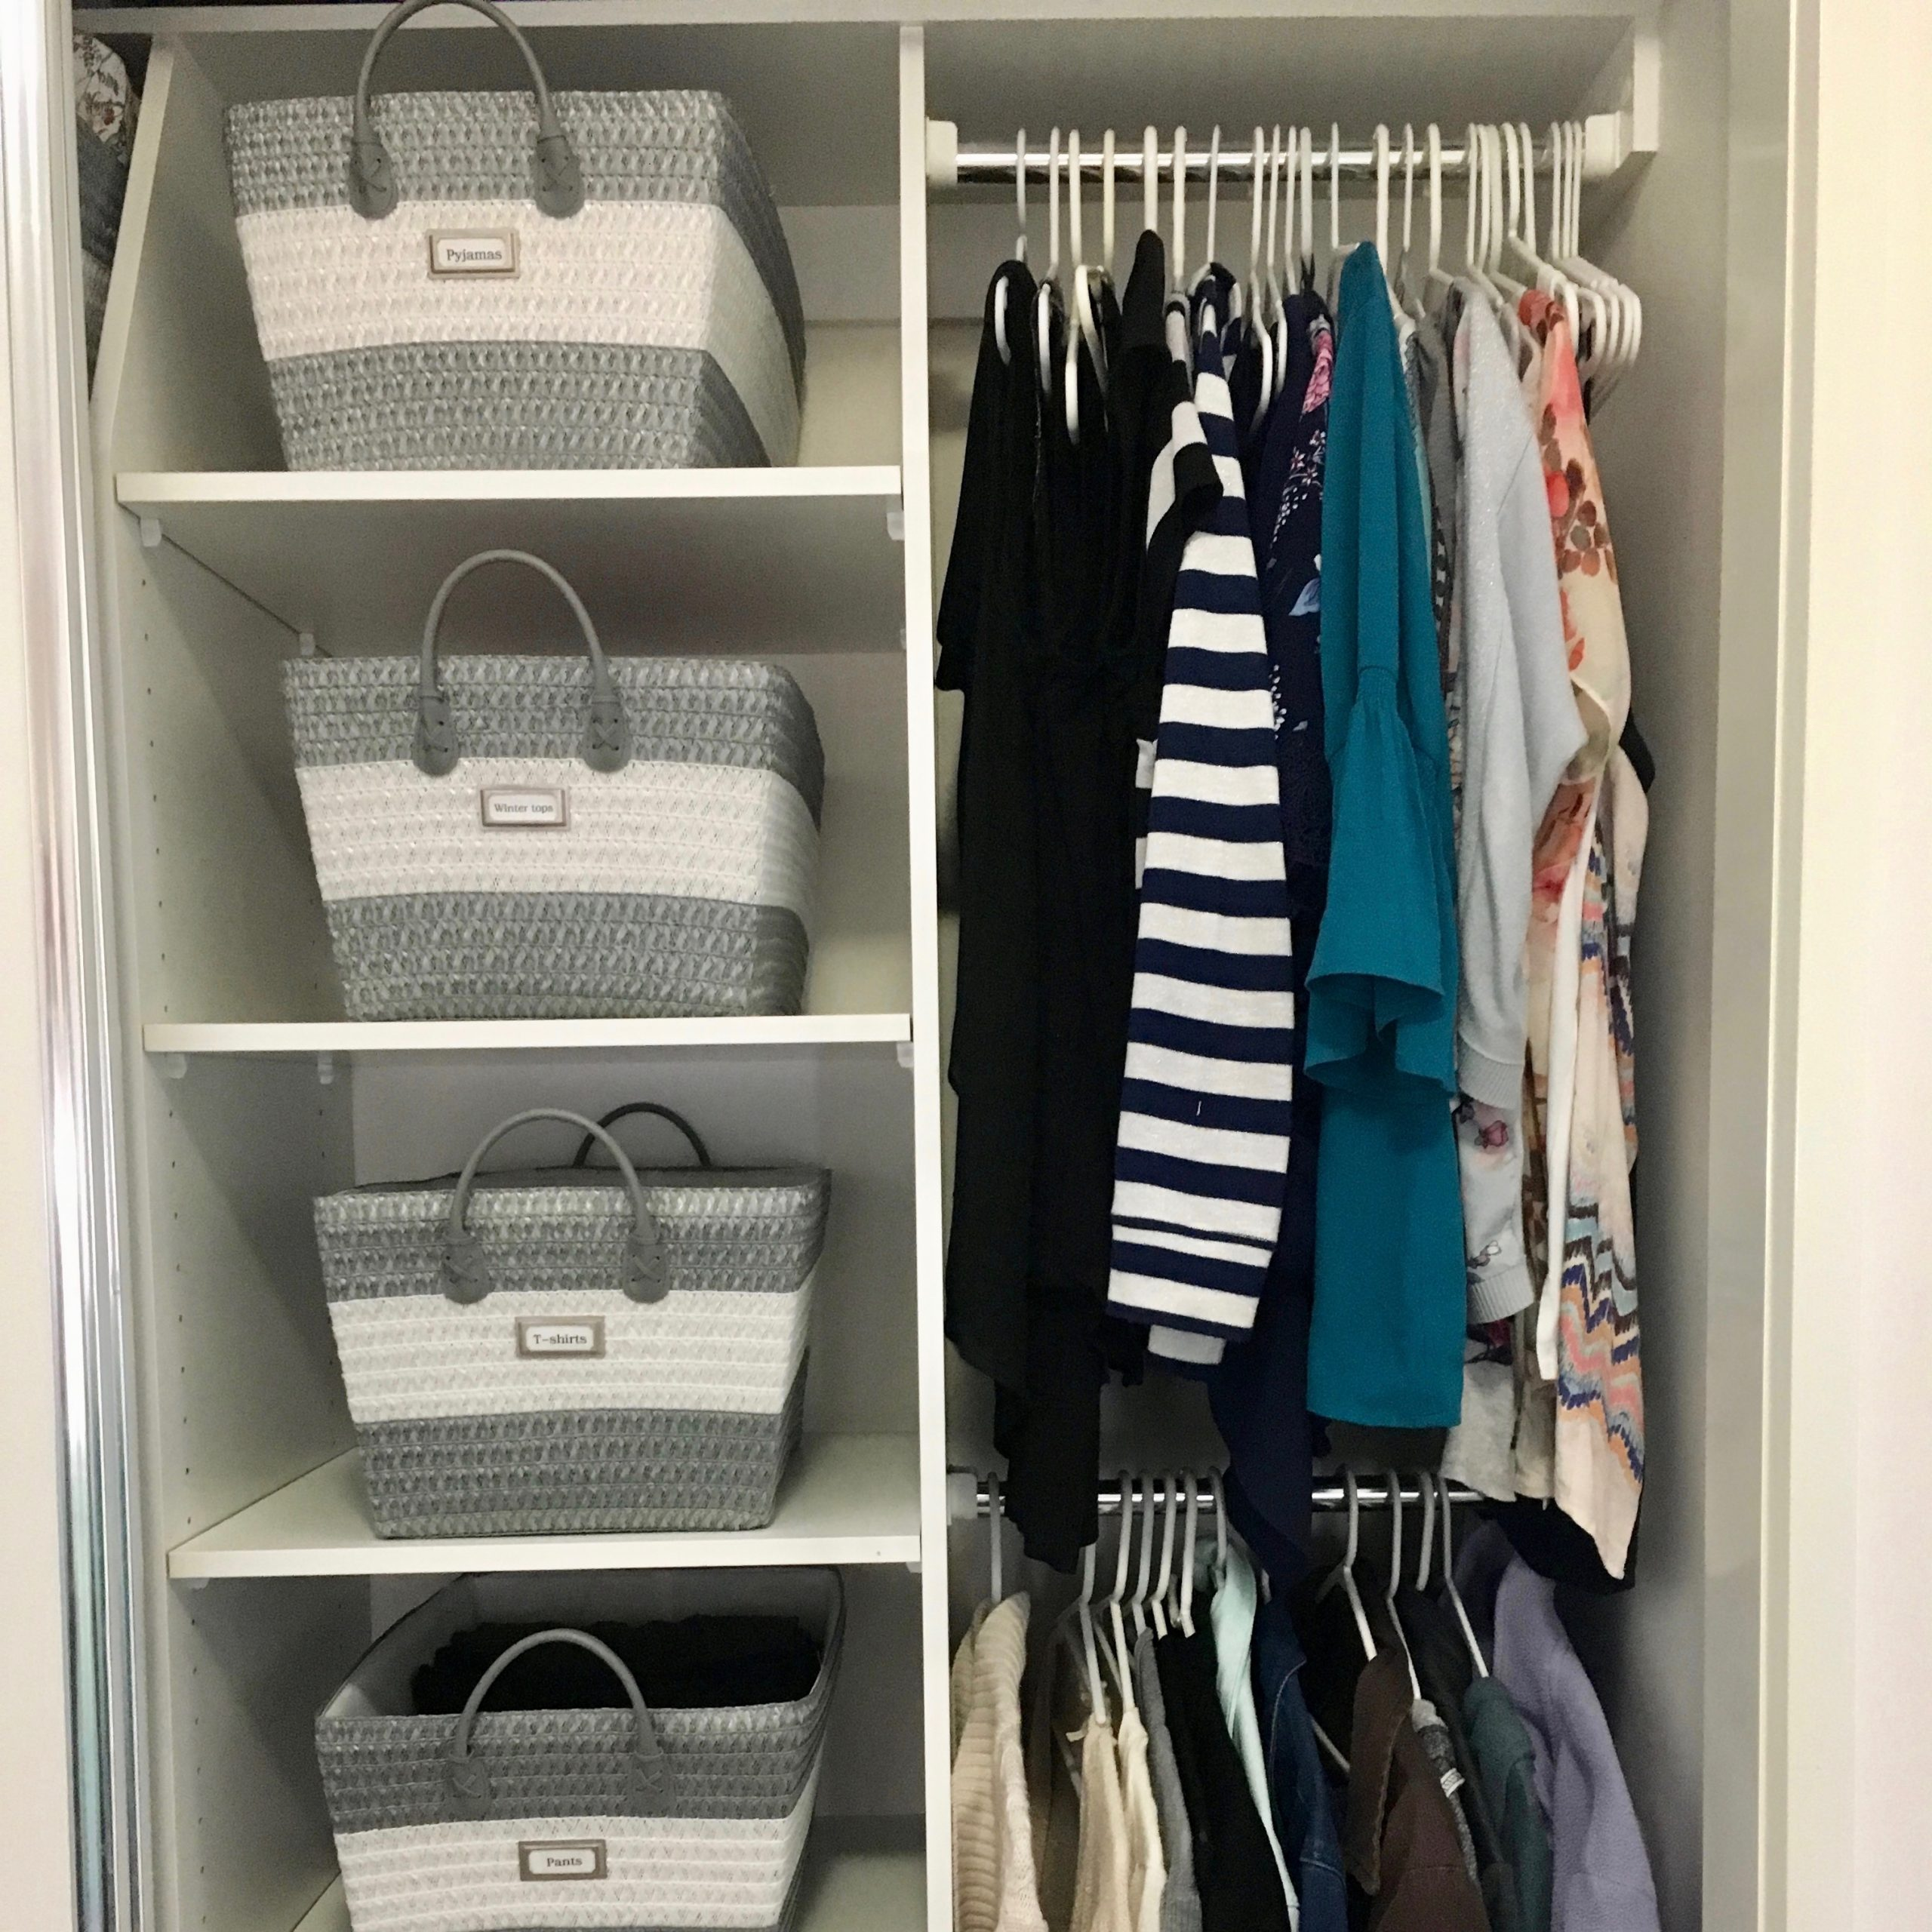 Wardrobe Organisation After - The Organising Bee Canberra